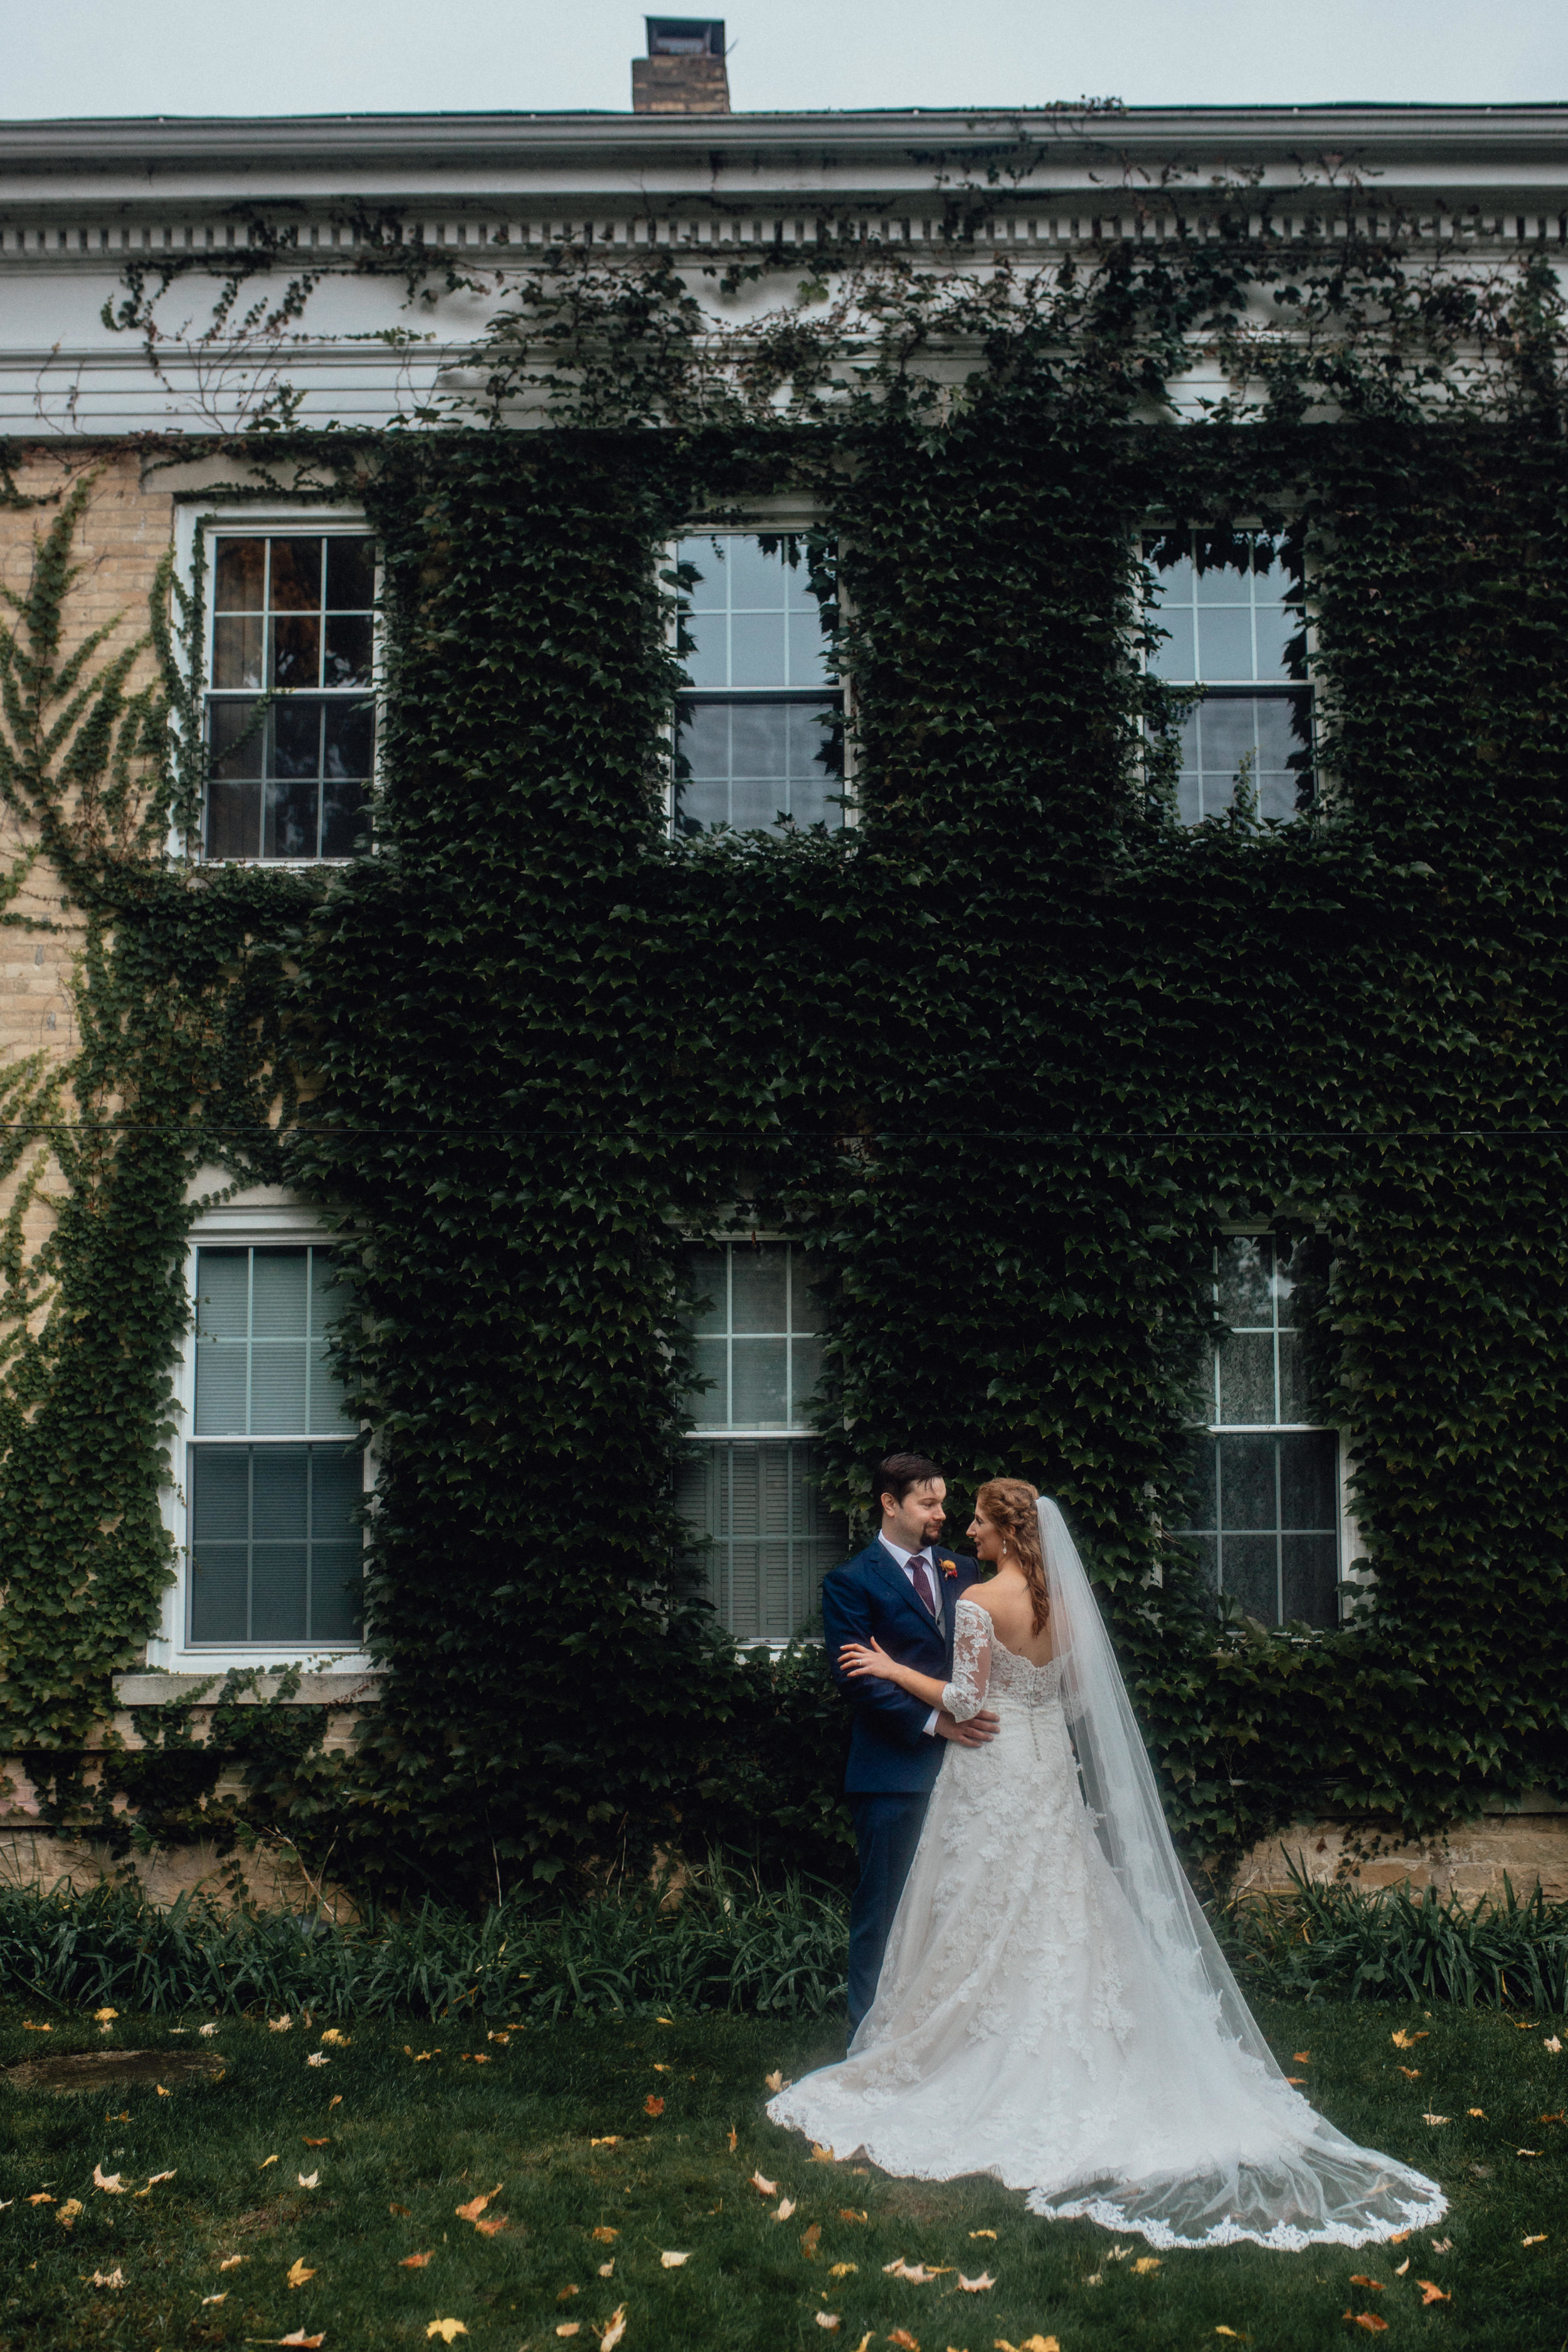 bride-and-groom-portrait-at-rustic-manor-1848-with-ivy.jpg